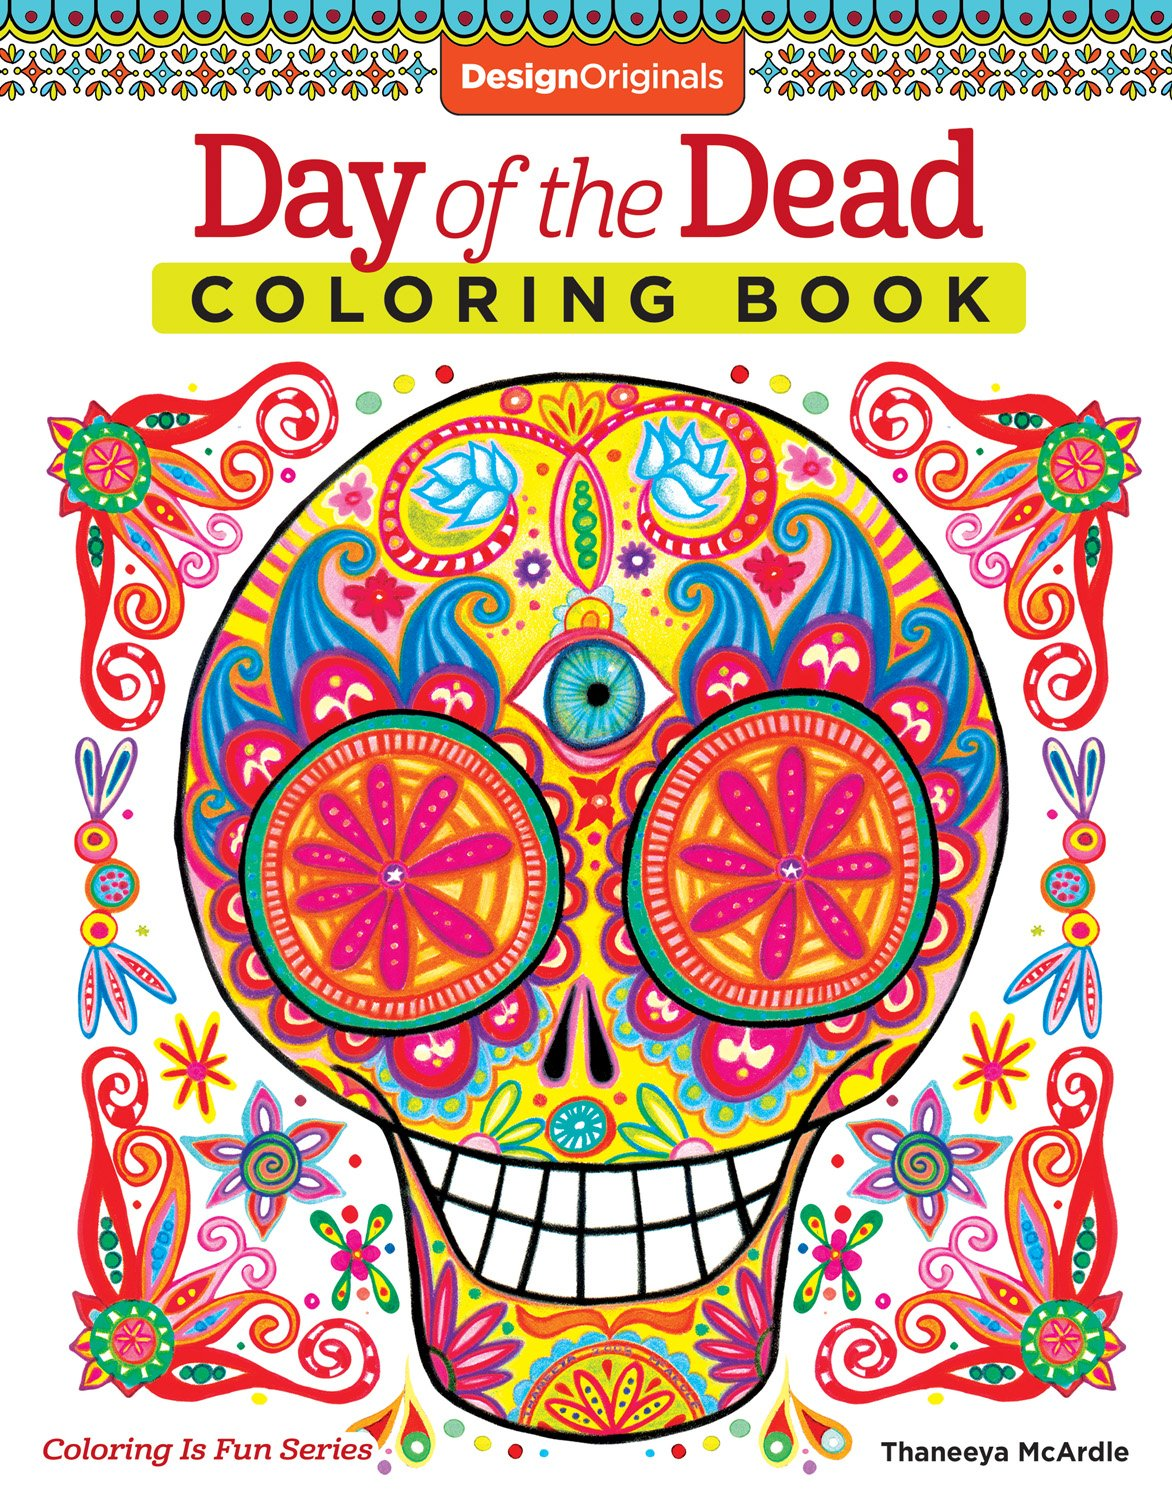 Free spirit coloring book by thaneeya mcardle coloring books by - Day Of The Dead Coloring Book Coloring Is Fun Thaneeya Mcardle 8656116169982 Amazon Com Books